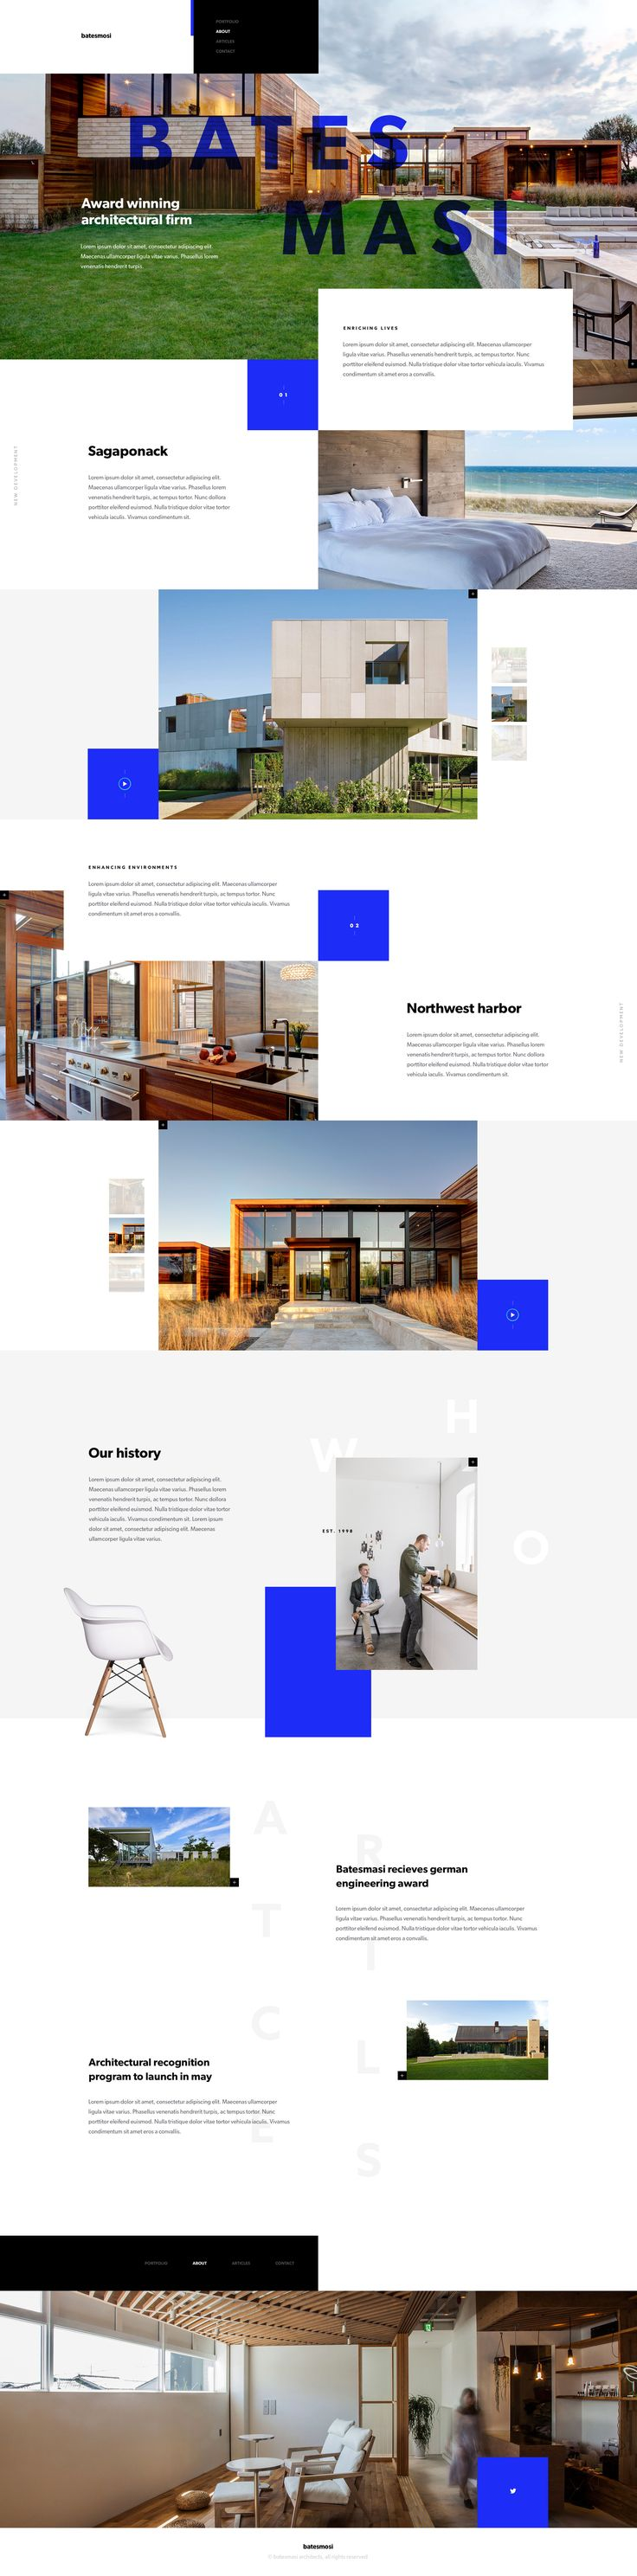 Dribbble - bates-masi-architects-website.jpg by Coulee Creative